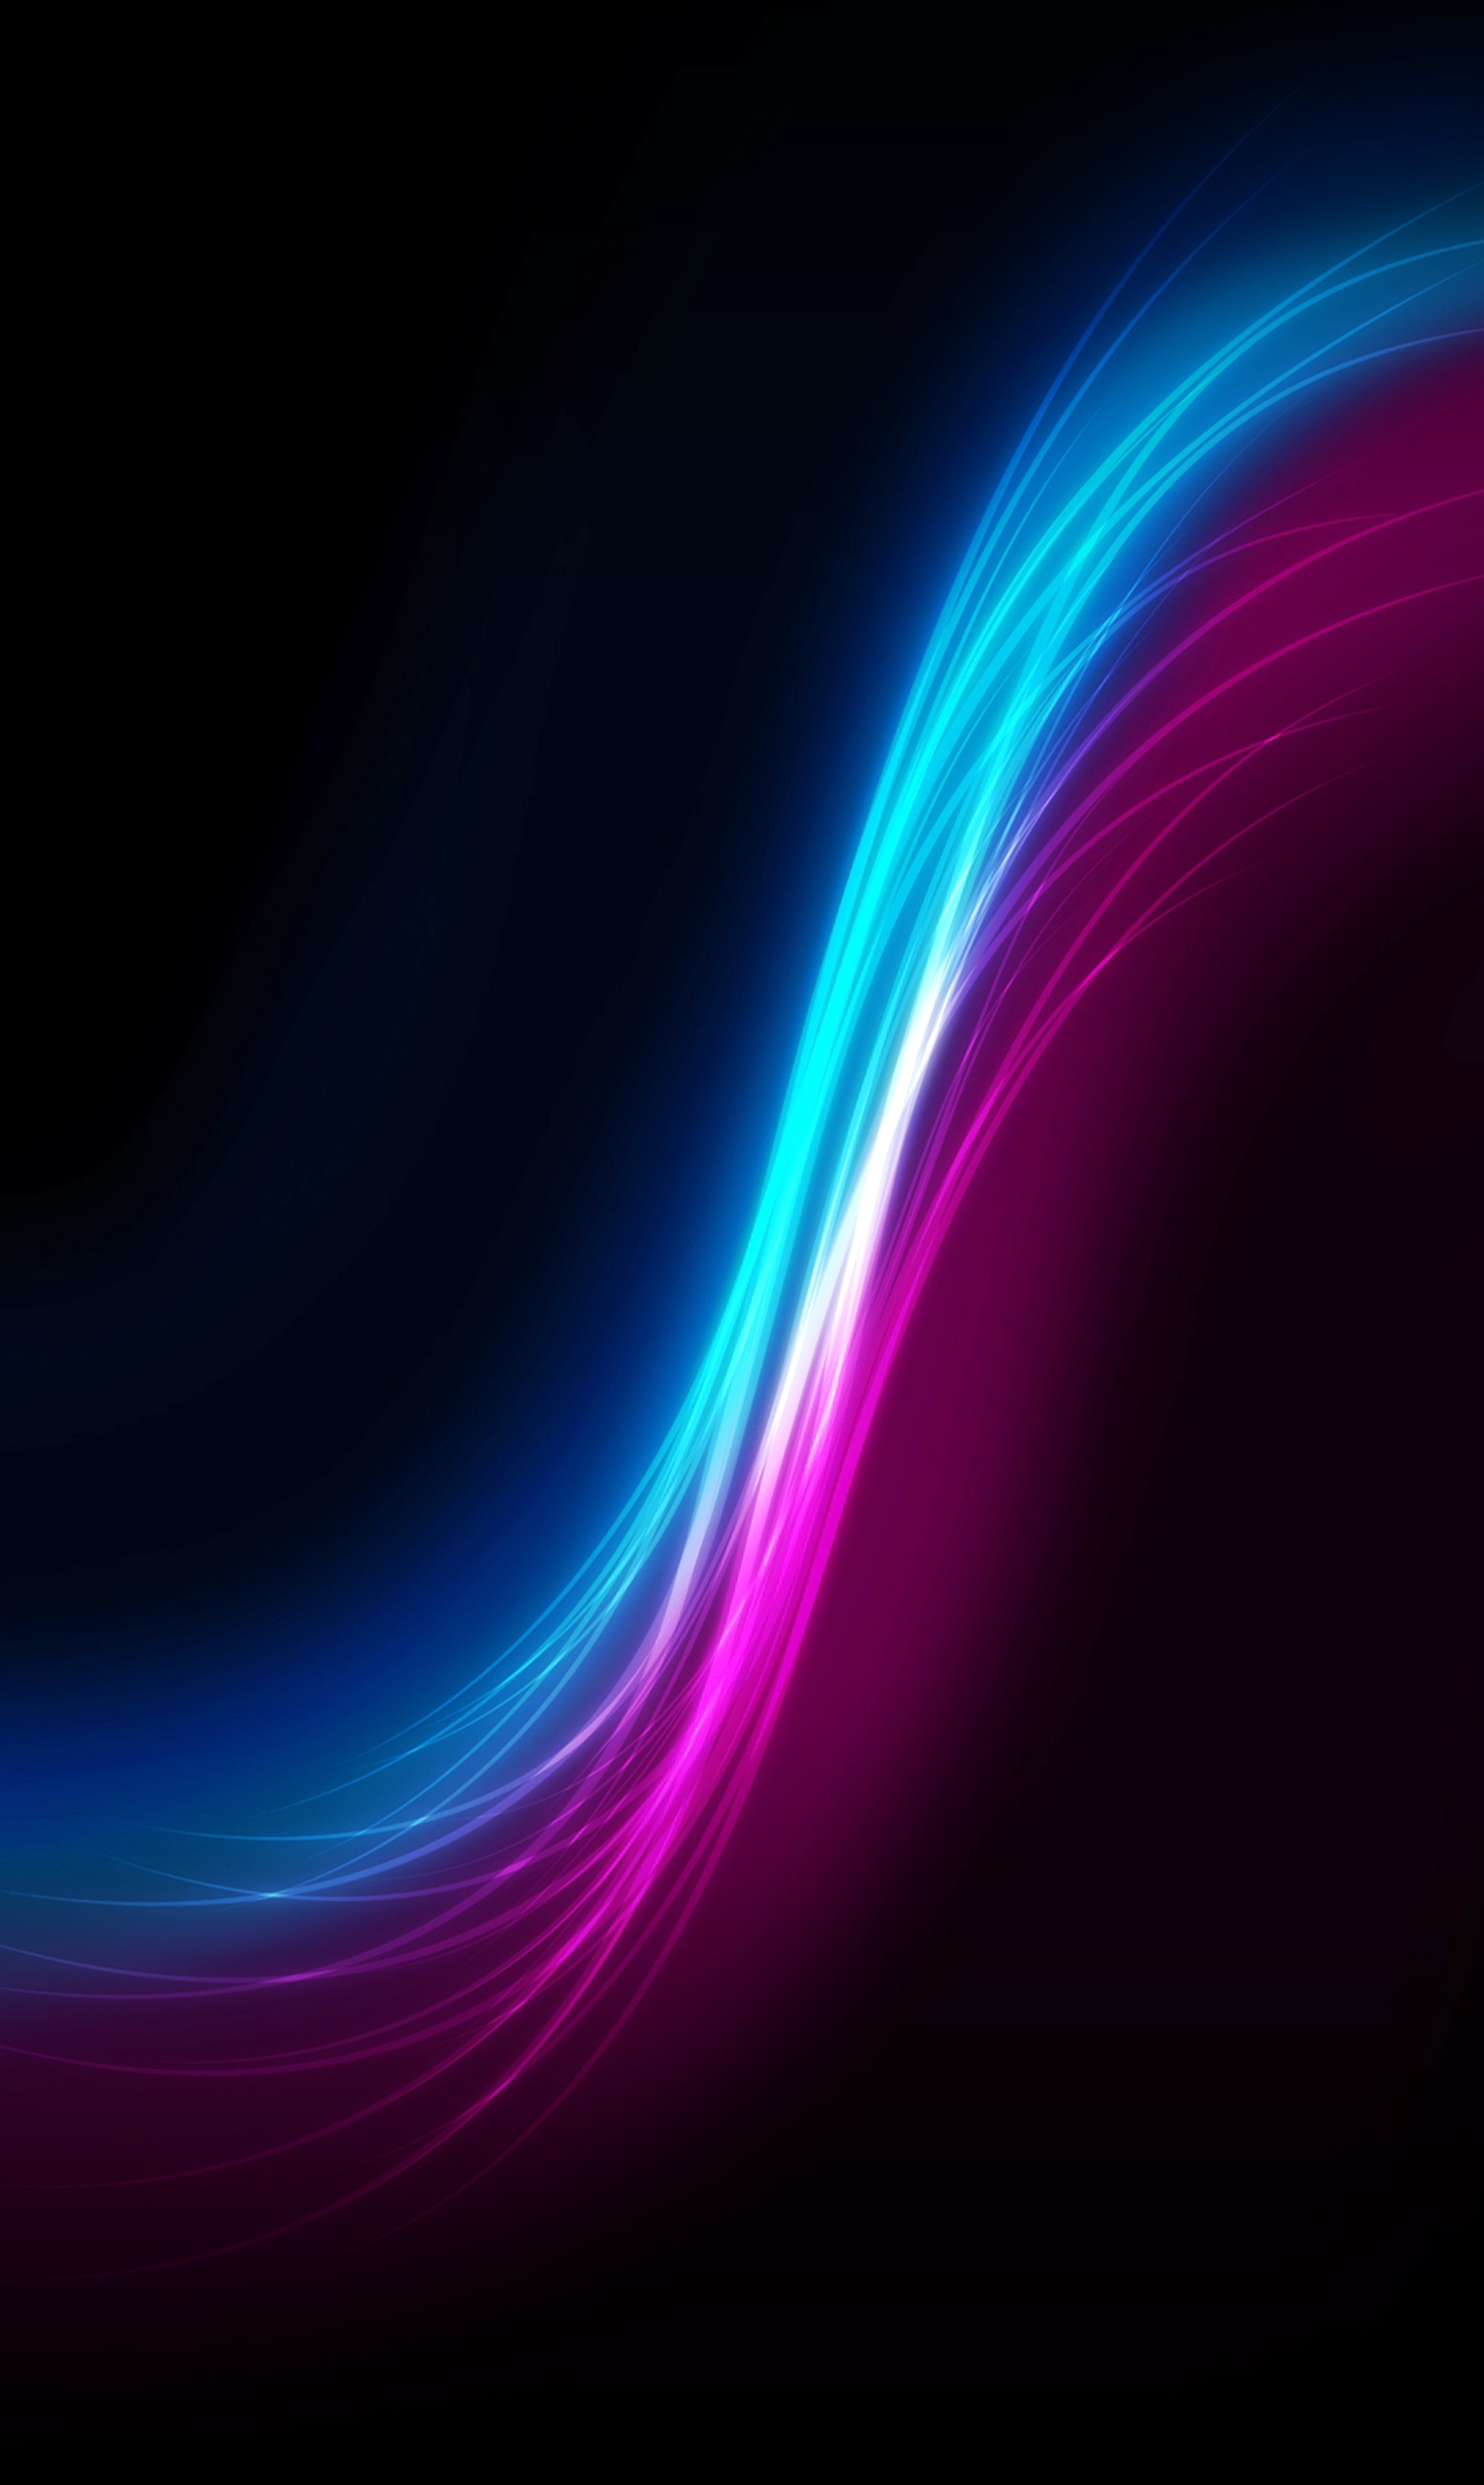 A wave of blue and magenta light.